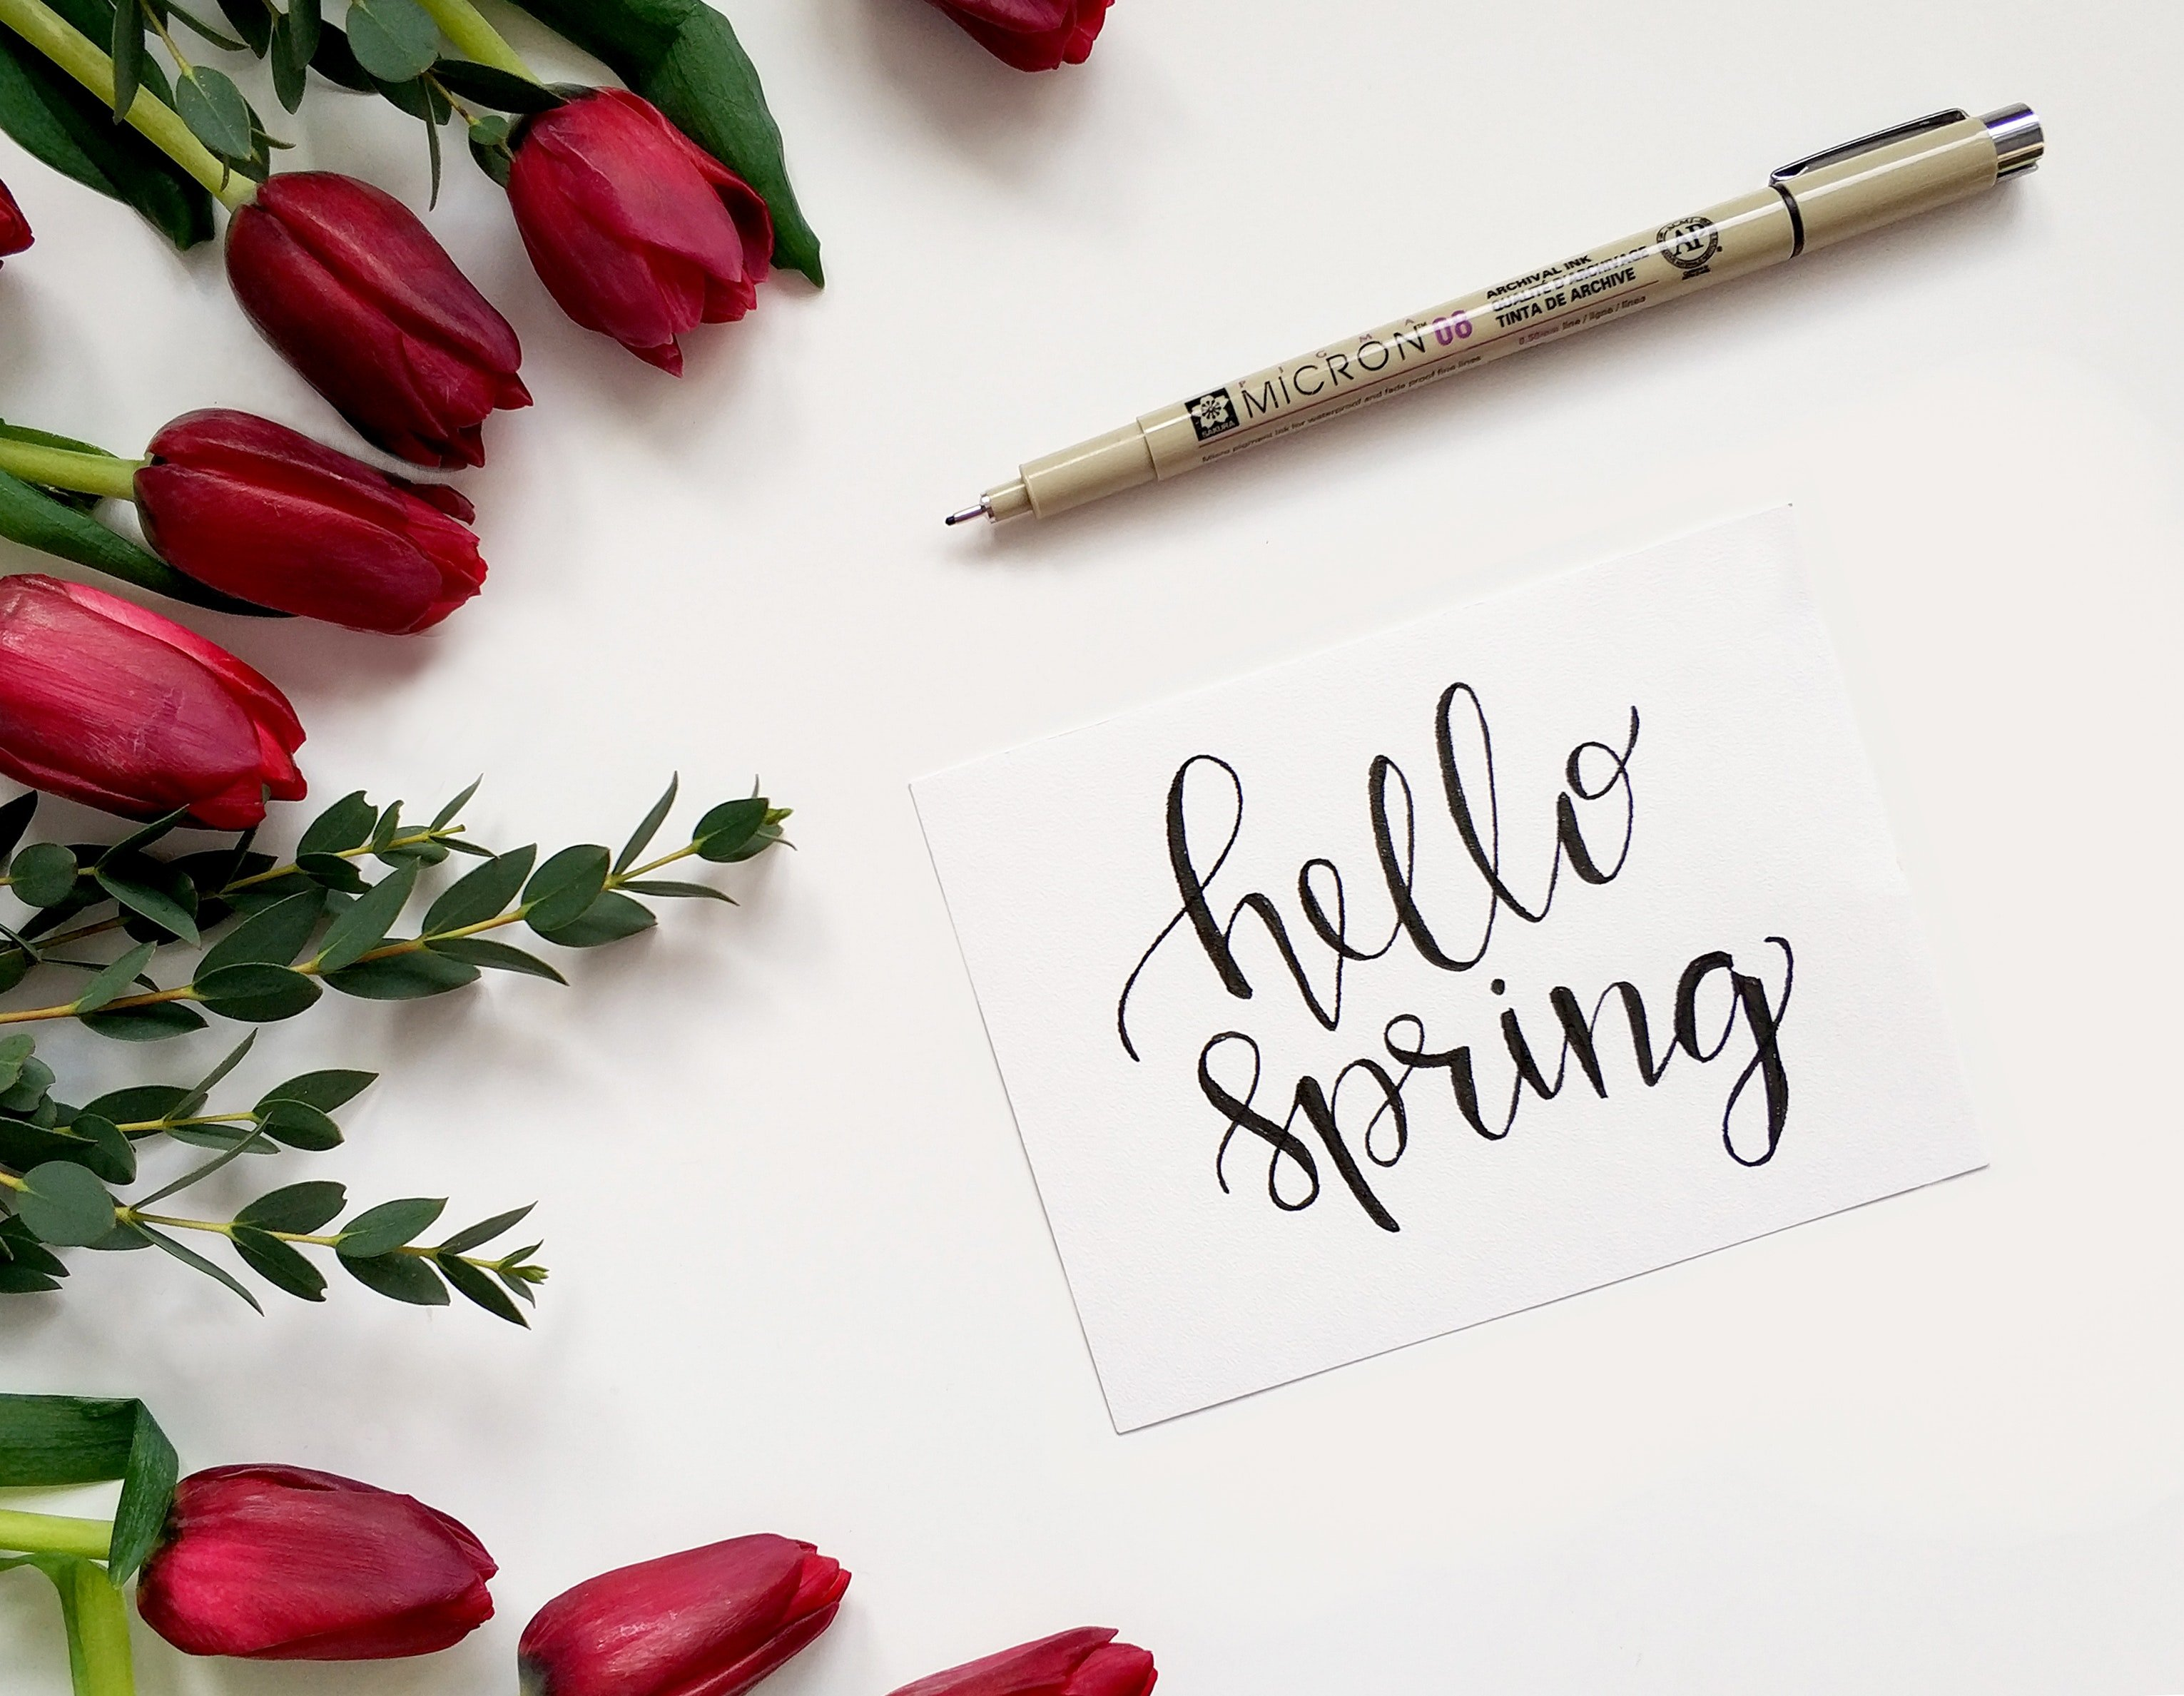 Welcome Spring. | Source: Pexels